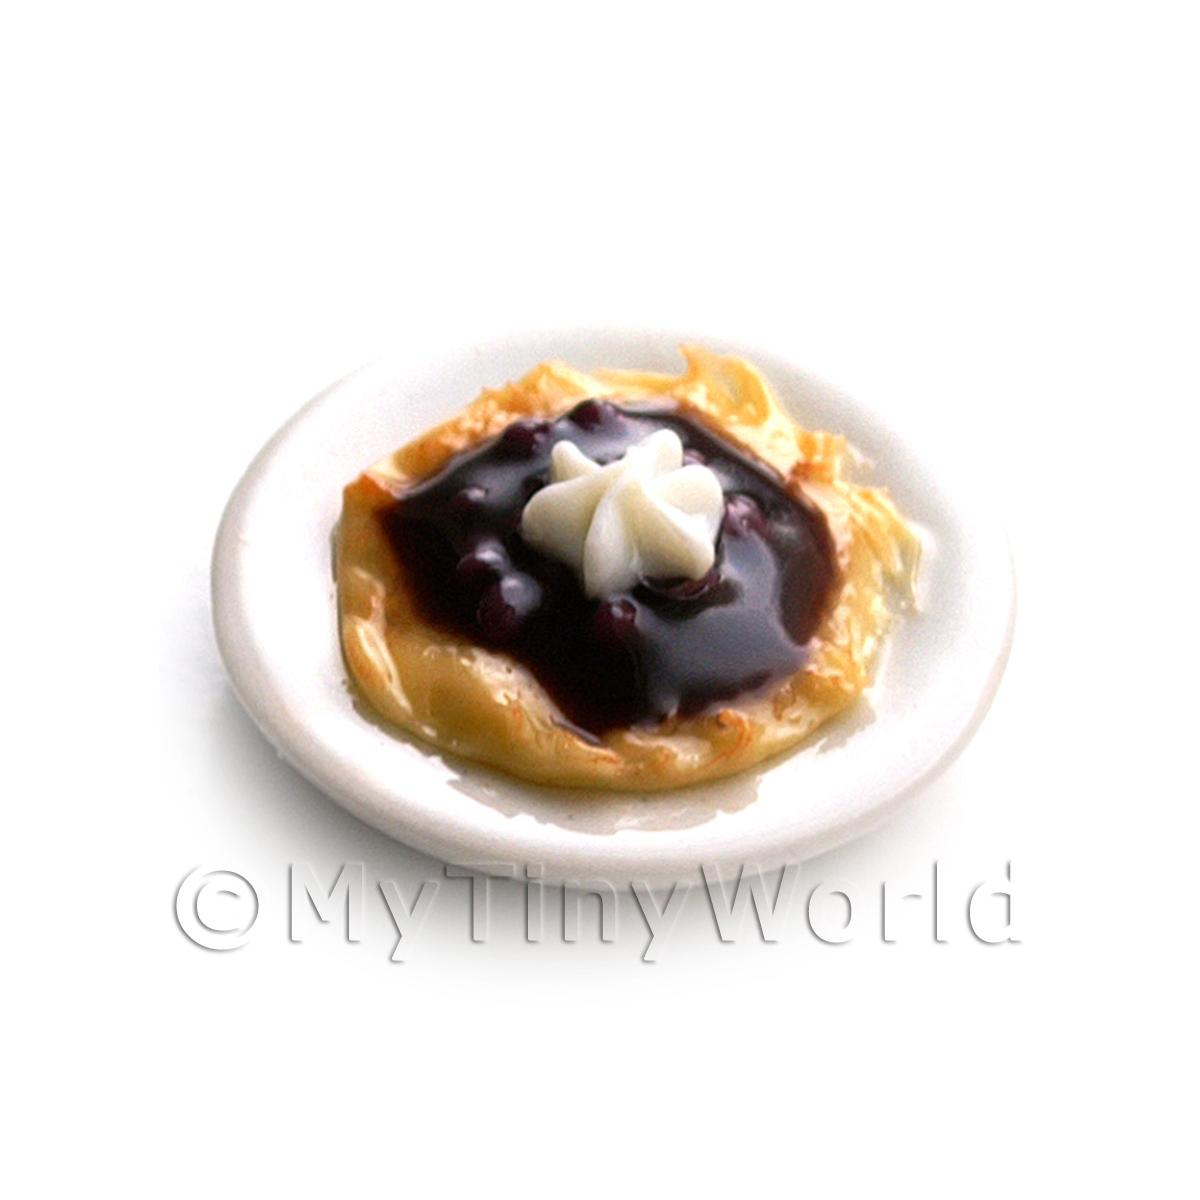 Dolls House Miniature Pancakes Topped with Black Cherries and Cream